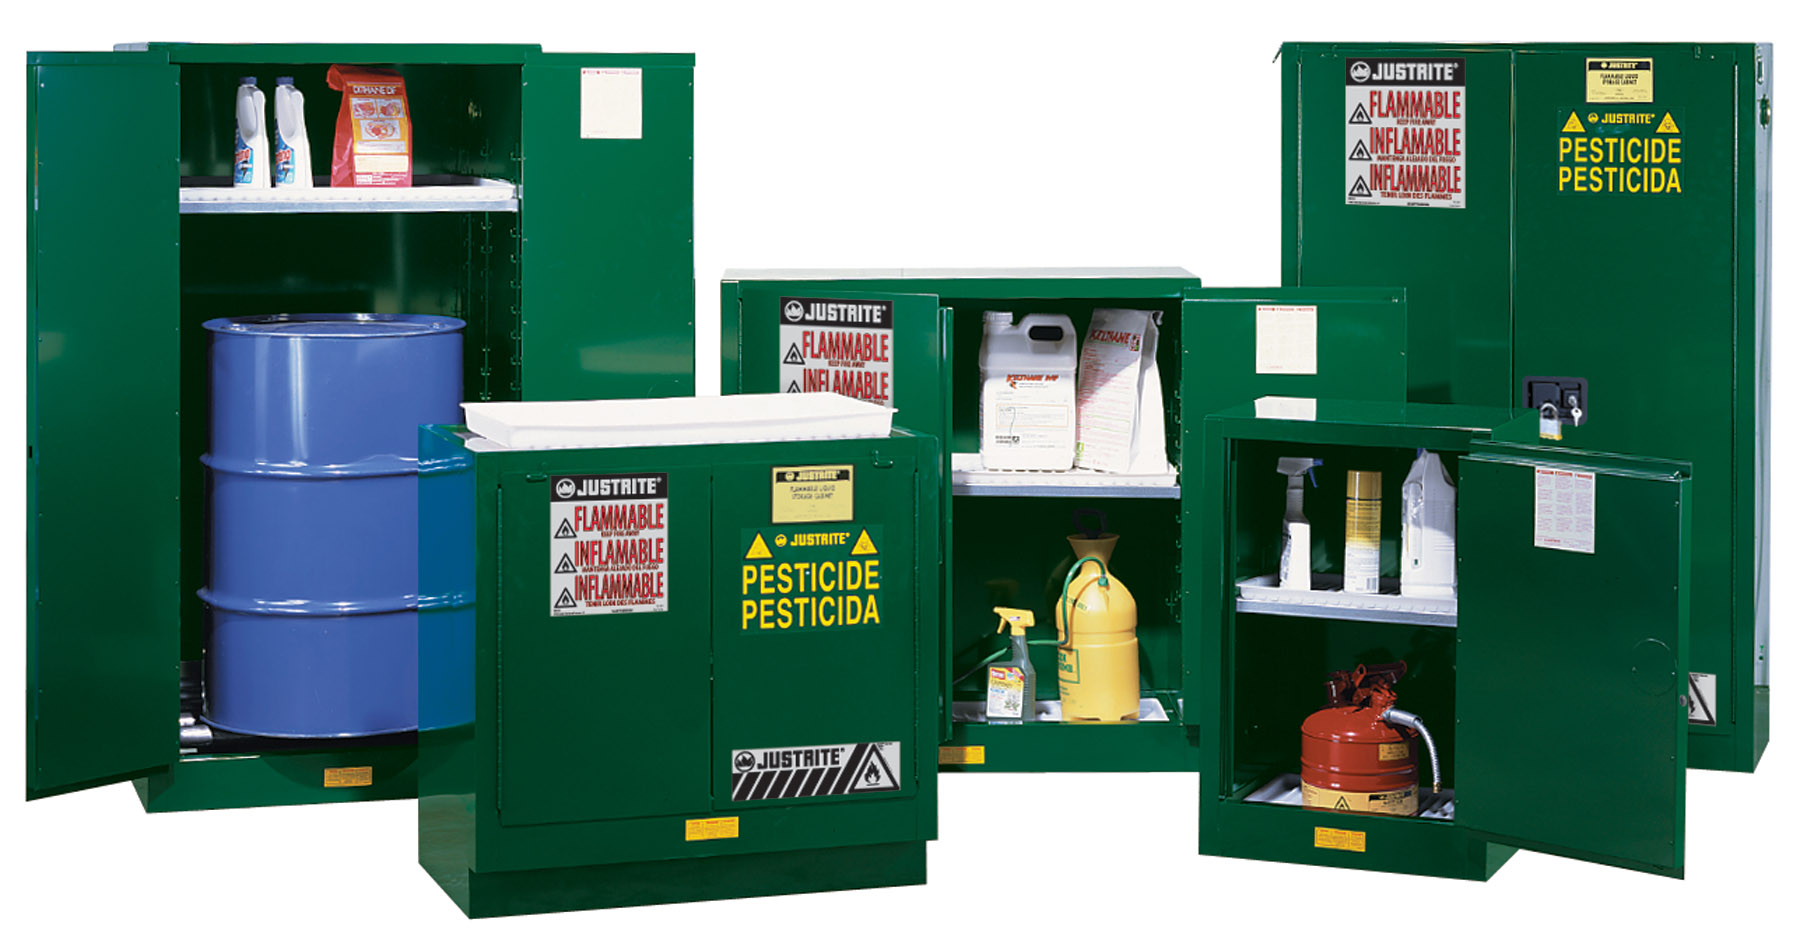 Golf Courses; Lawn care companies; 896264-grp1.jpg & Safety Cabinets for Pesticide Storage and Poison Storage